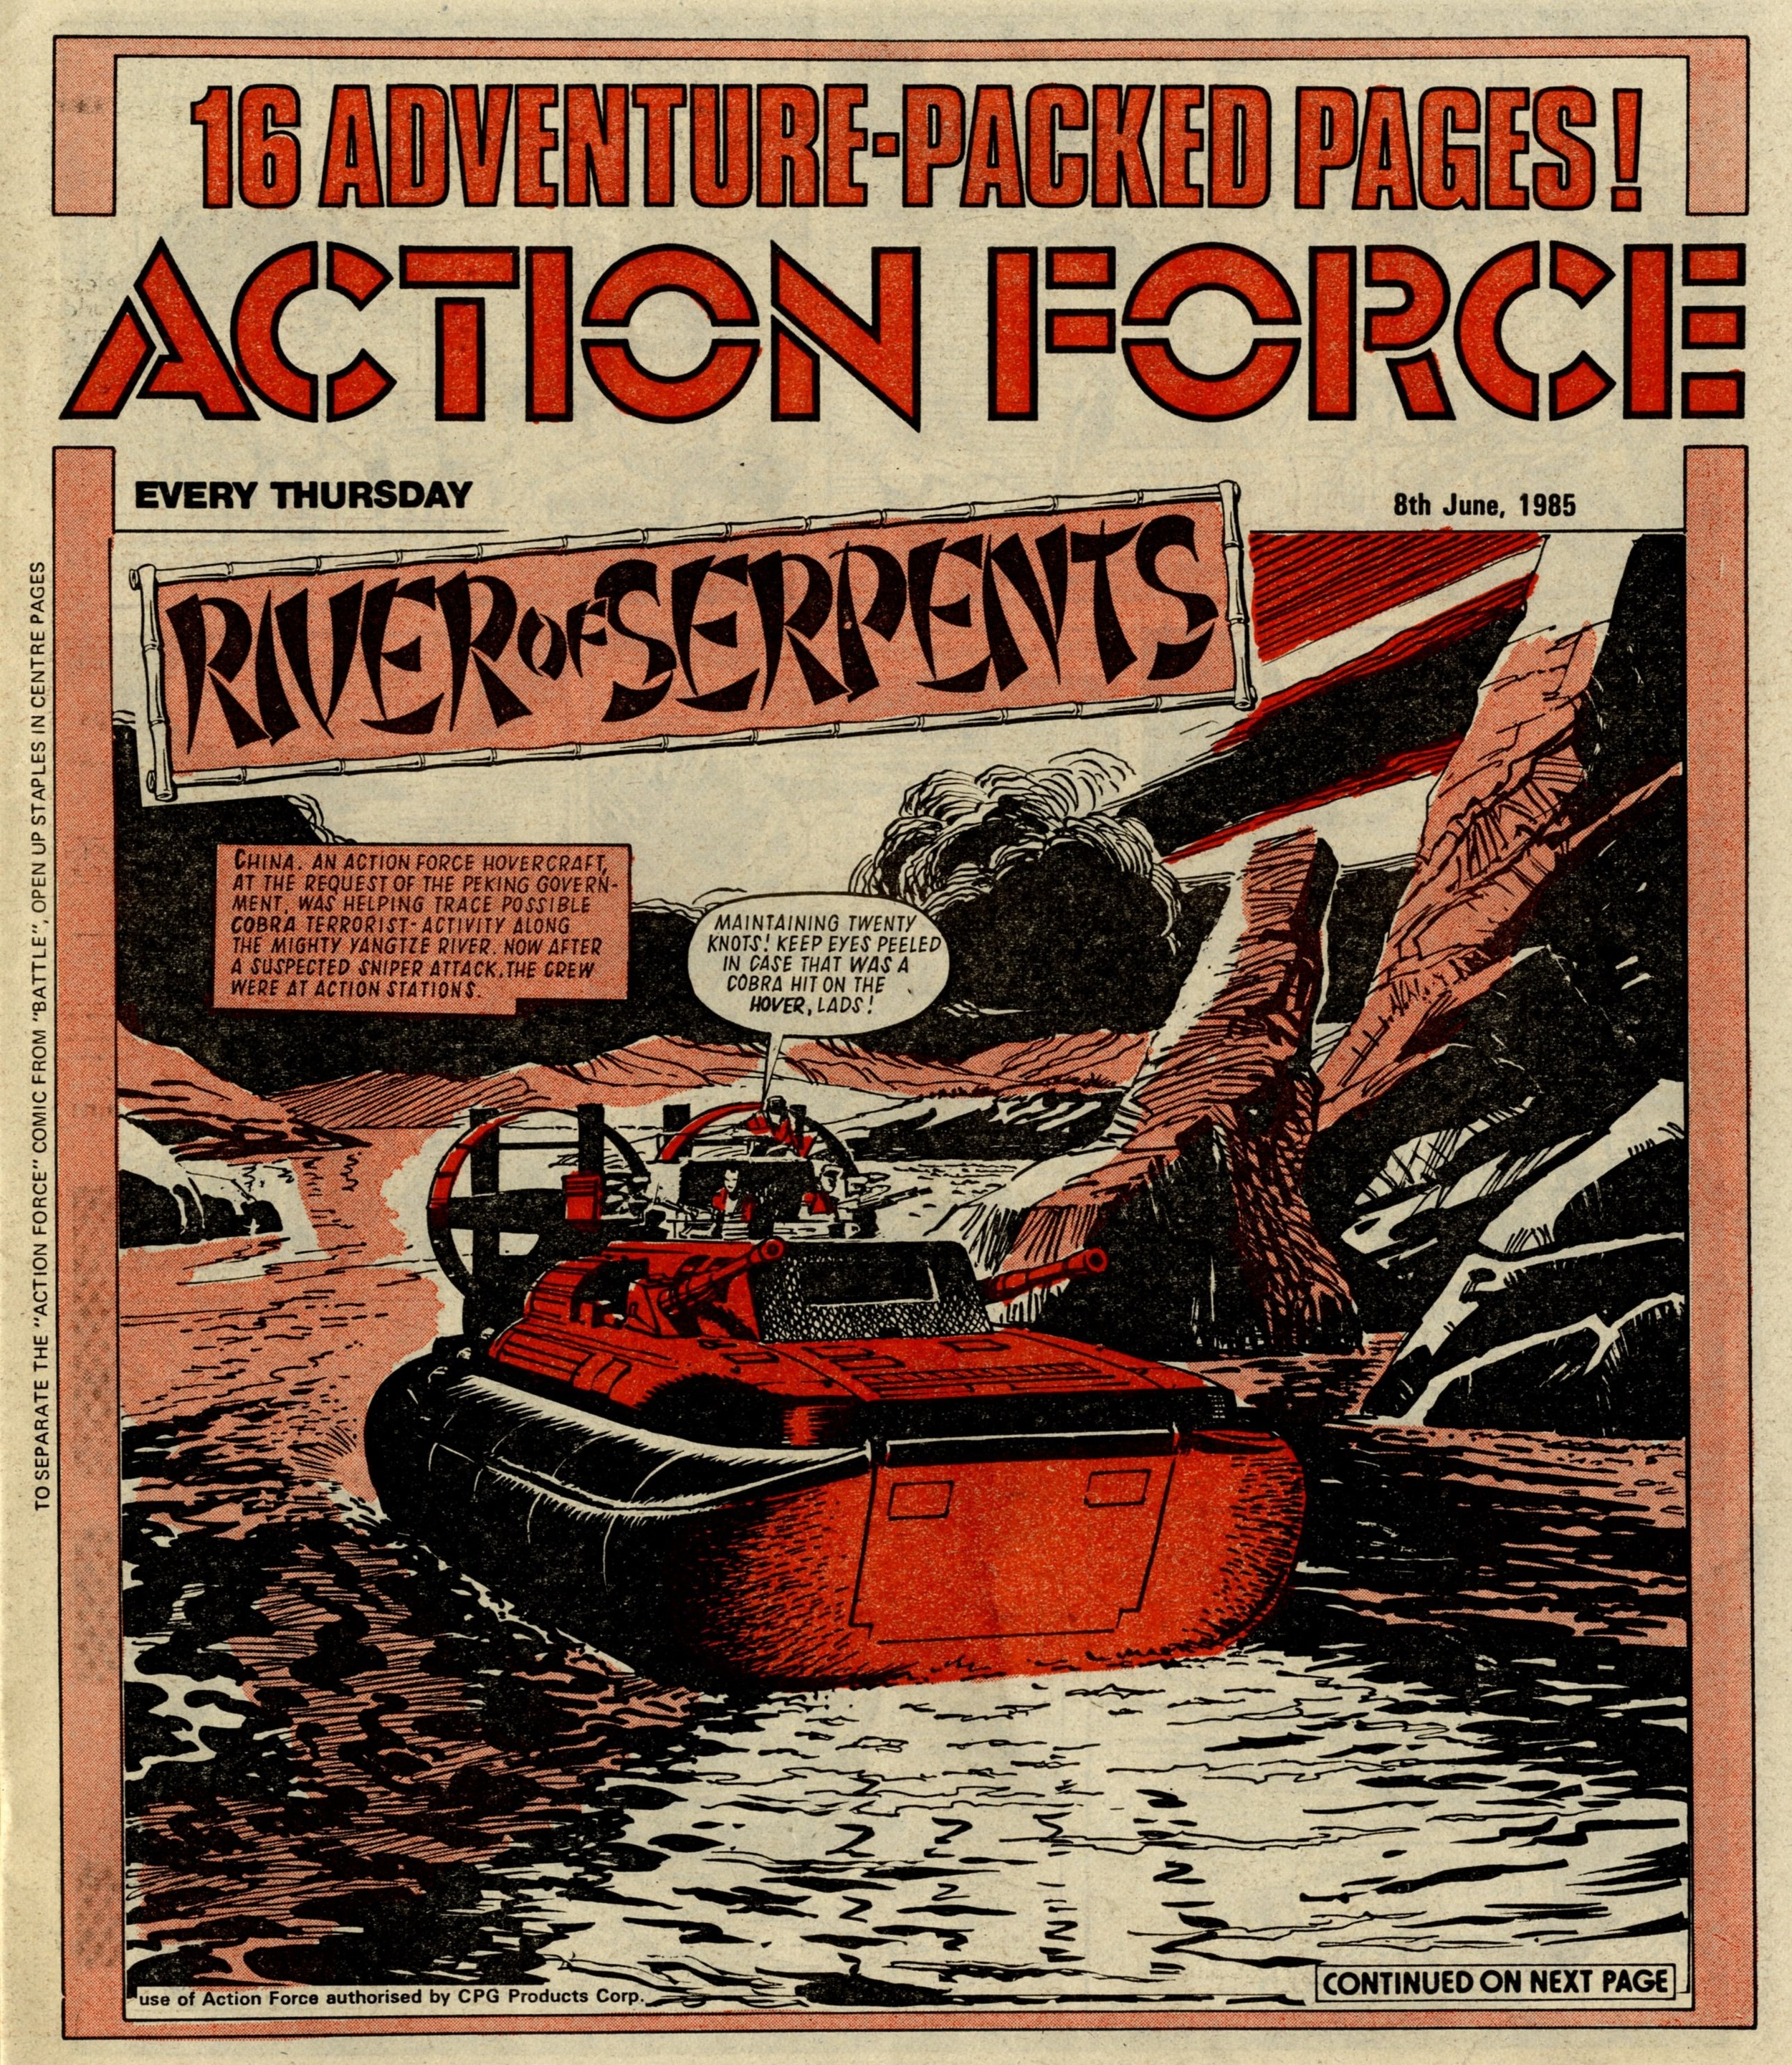 Action Force: River of Serpents: Gerry Finley-Day (writer), Geoff Campion (artist)